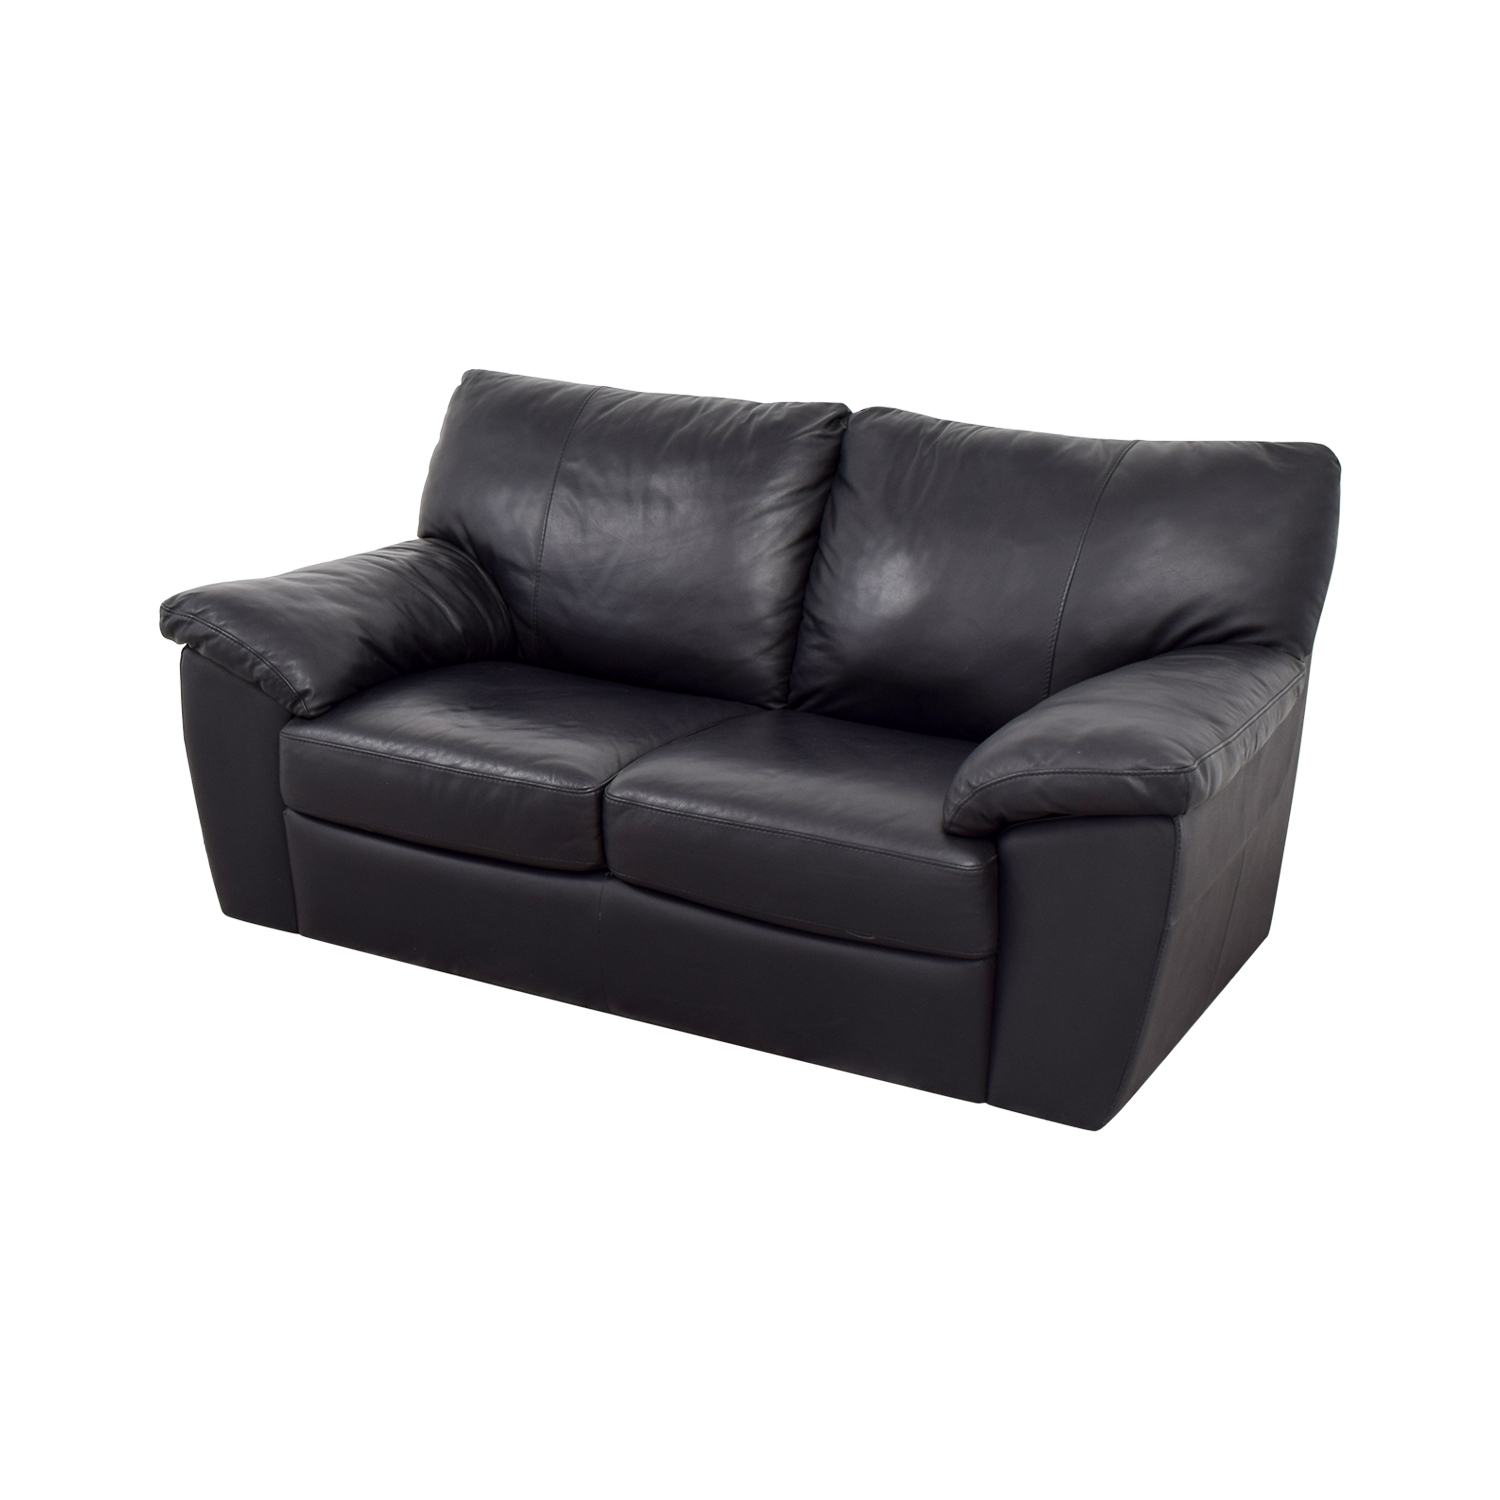 81 off ikea ikea black leather two cushion couch sofas